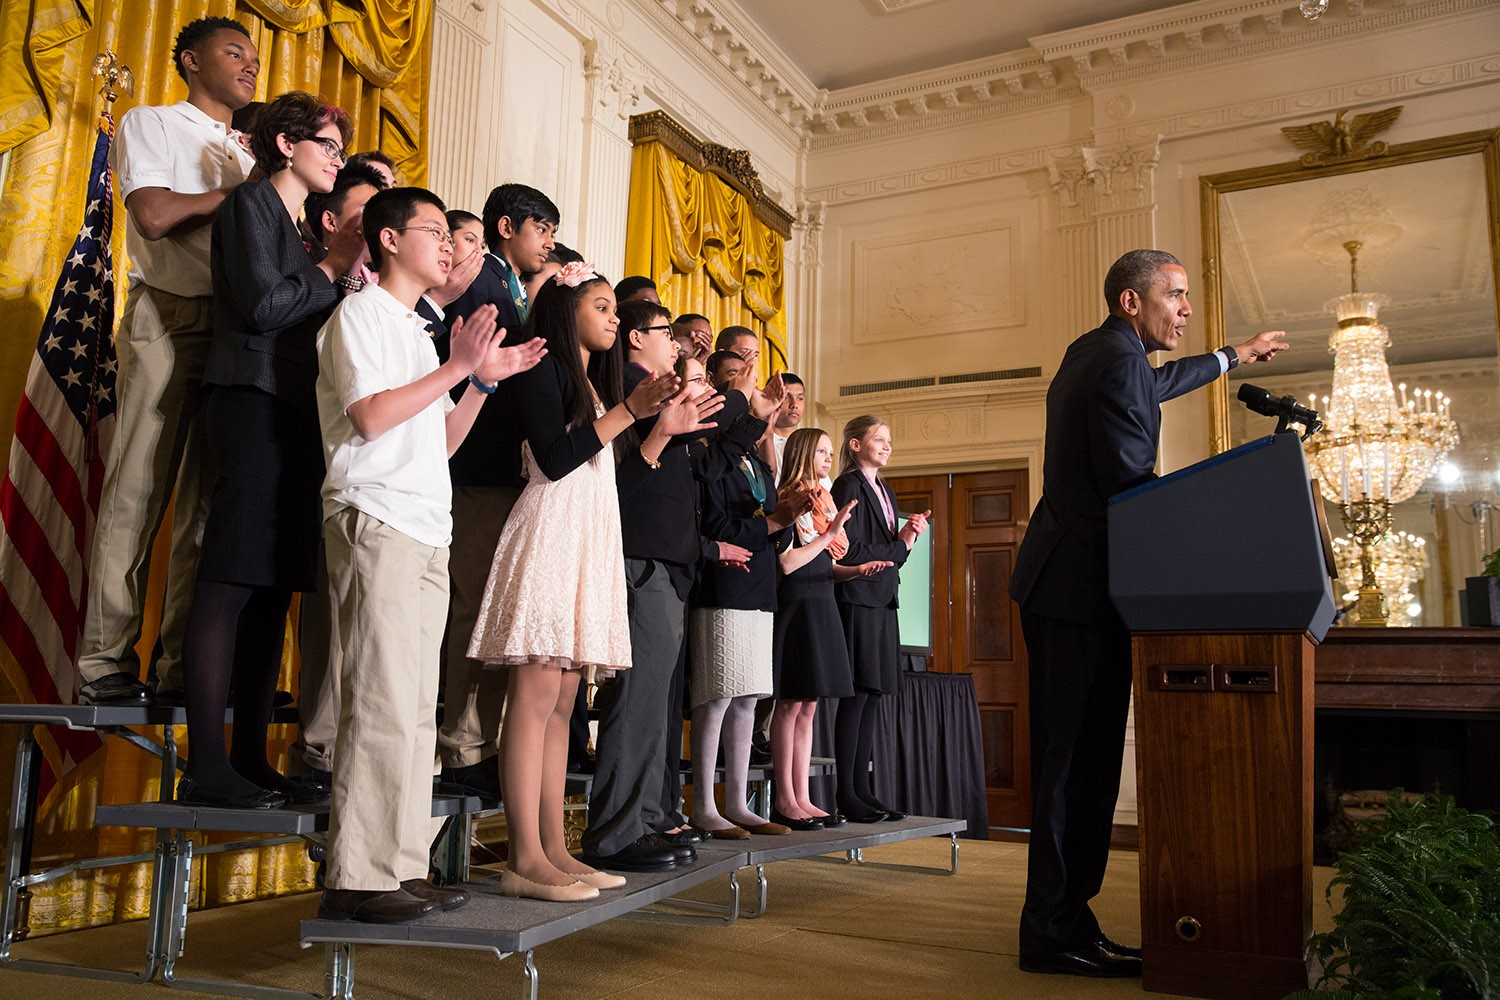 President Barack Obama delivers remarks during the 2015 White House Science Fair celebrating student winners of a broad range of science, technology, engineering, and math (STEM) competitions, in the East Room, March 23, 2015. (Official White House Photo by Chuck Kennedy)